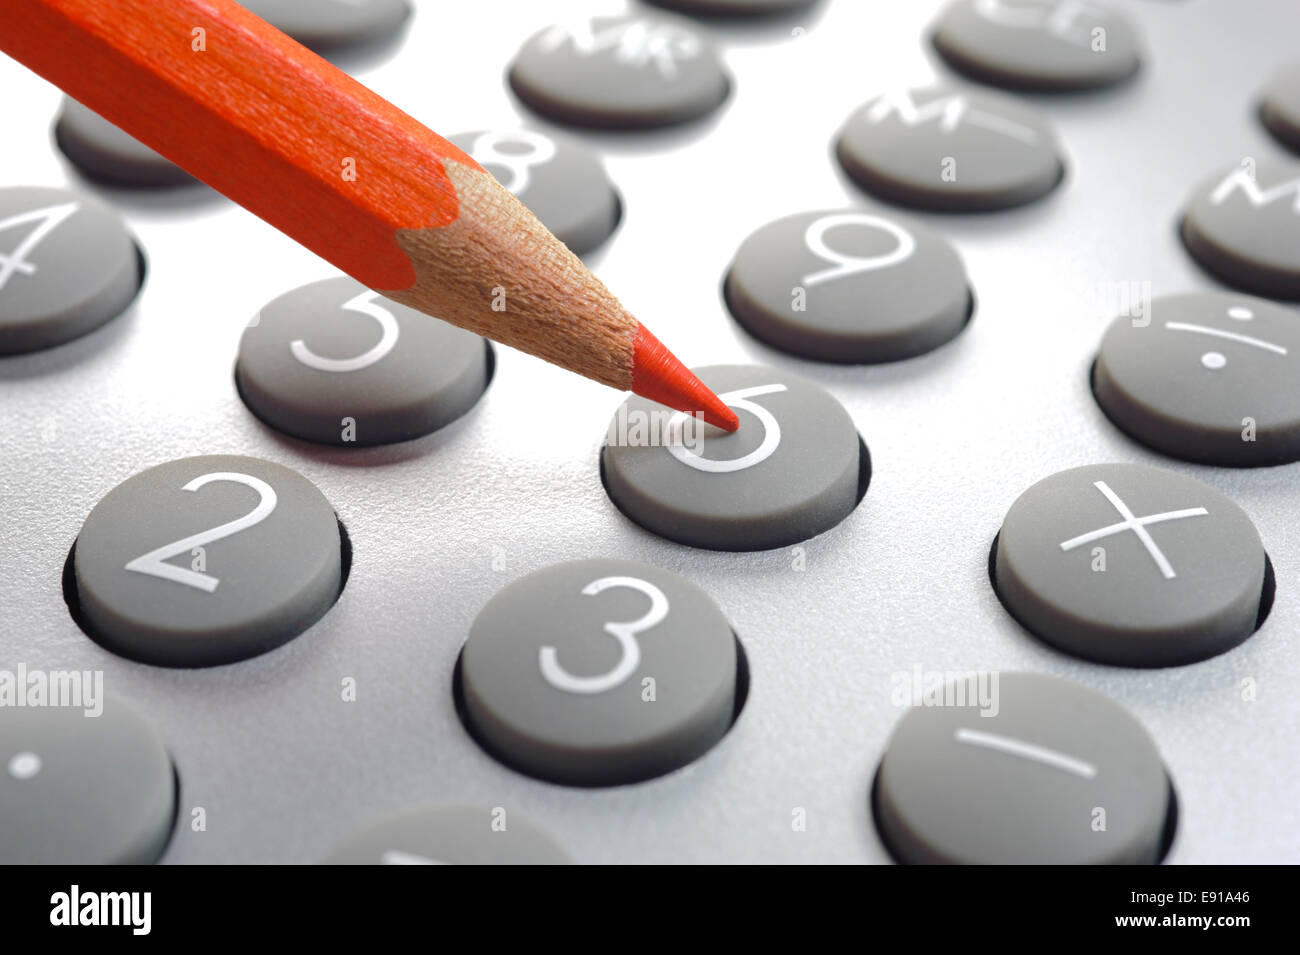 financial business calculation with calculator - Stock Image